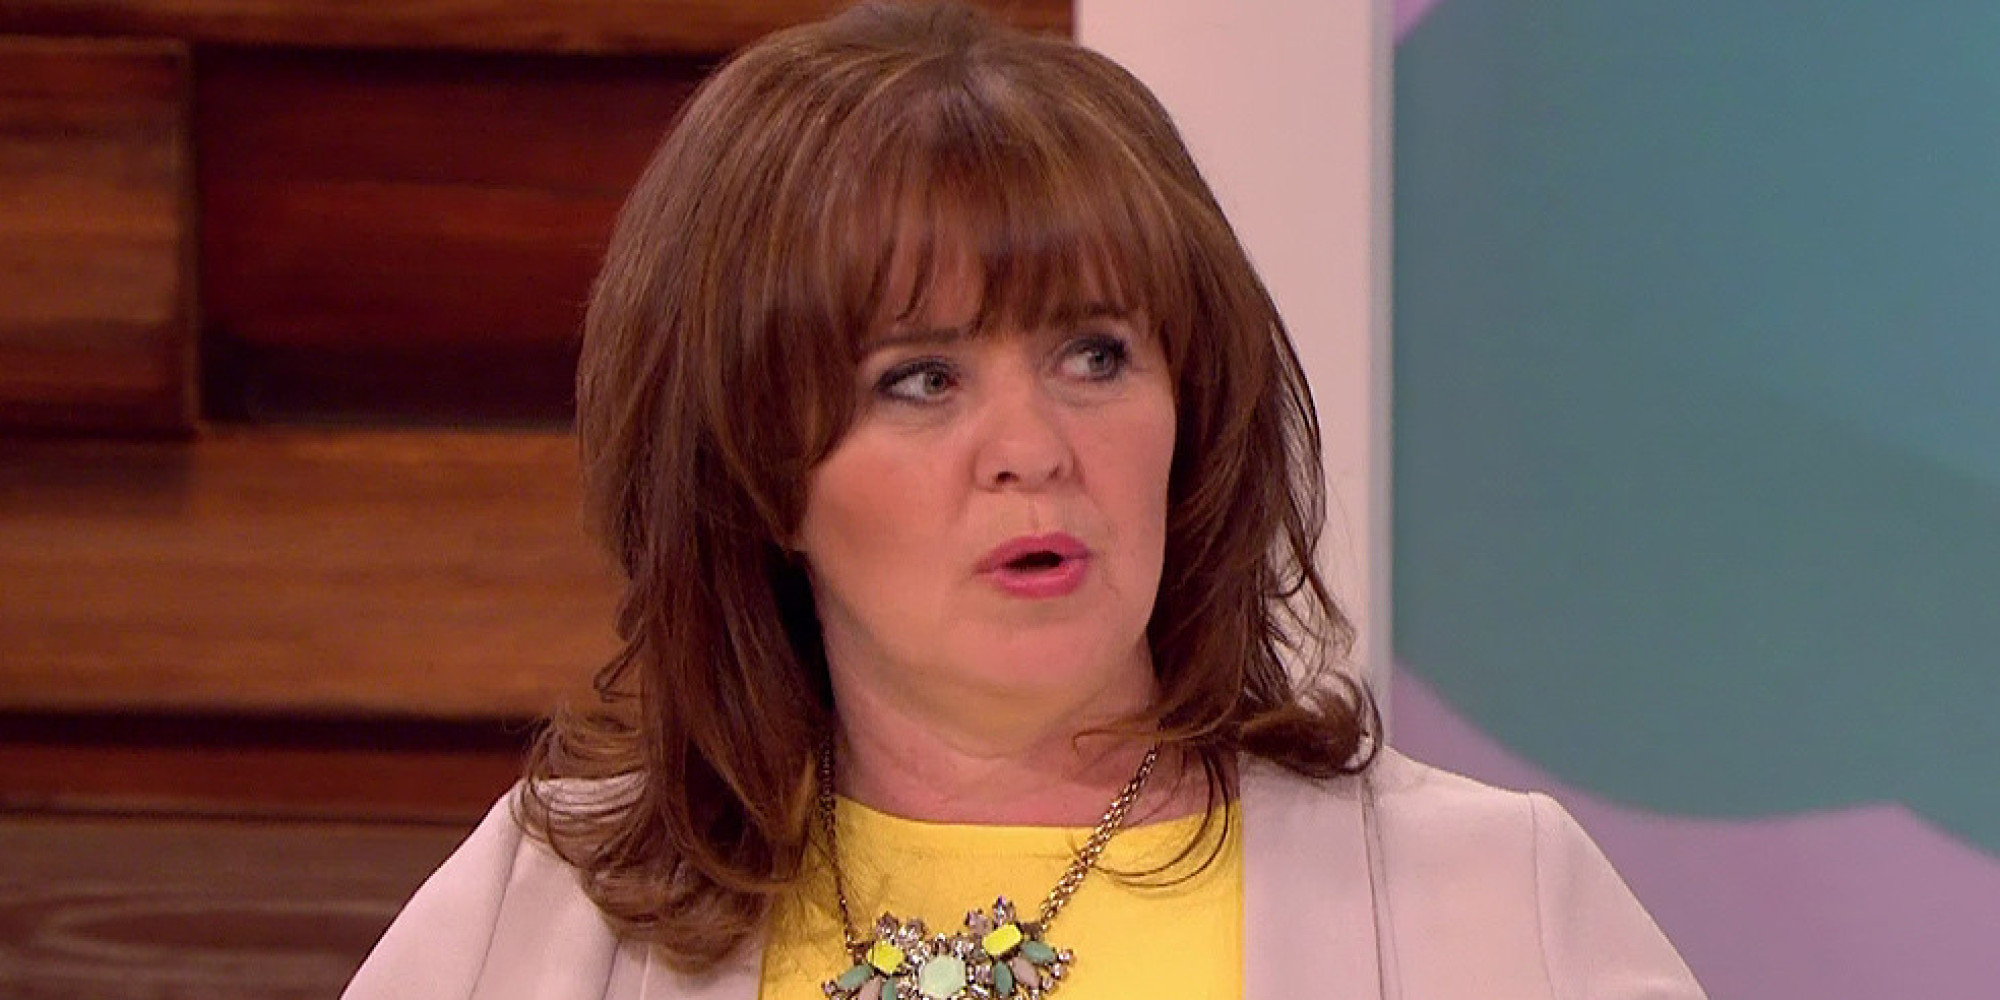 nolan single women Loose women's coleen nolan has opened-up about the kim woodburn row on the show last week, labelling her former celebrity big brother co-star an actress on last wednesday's episode, the pair .